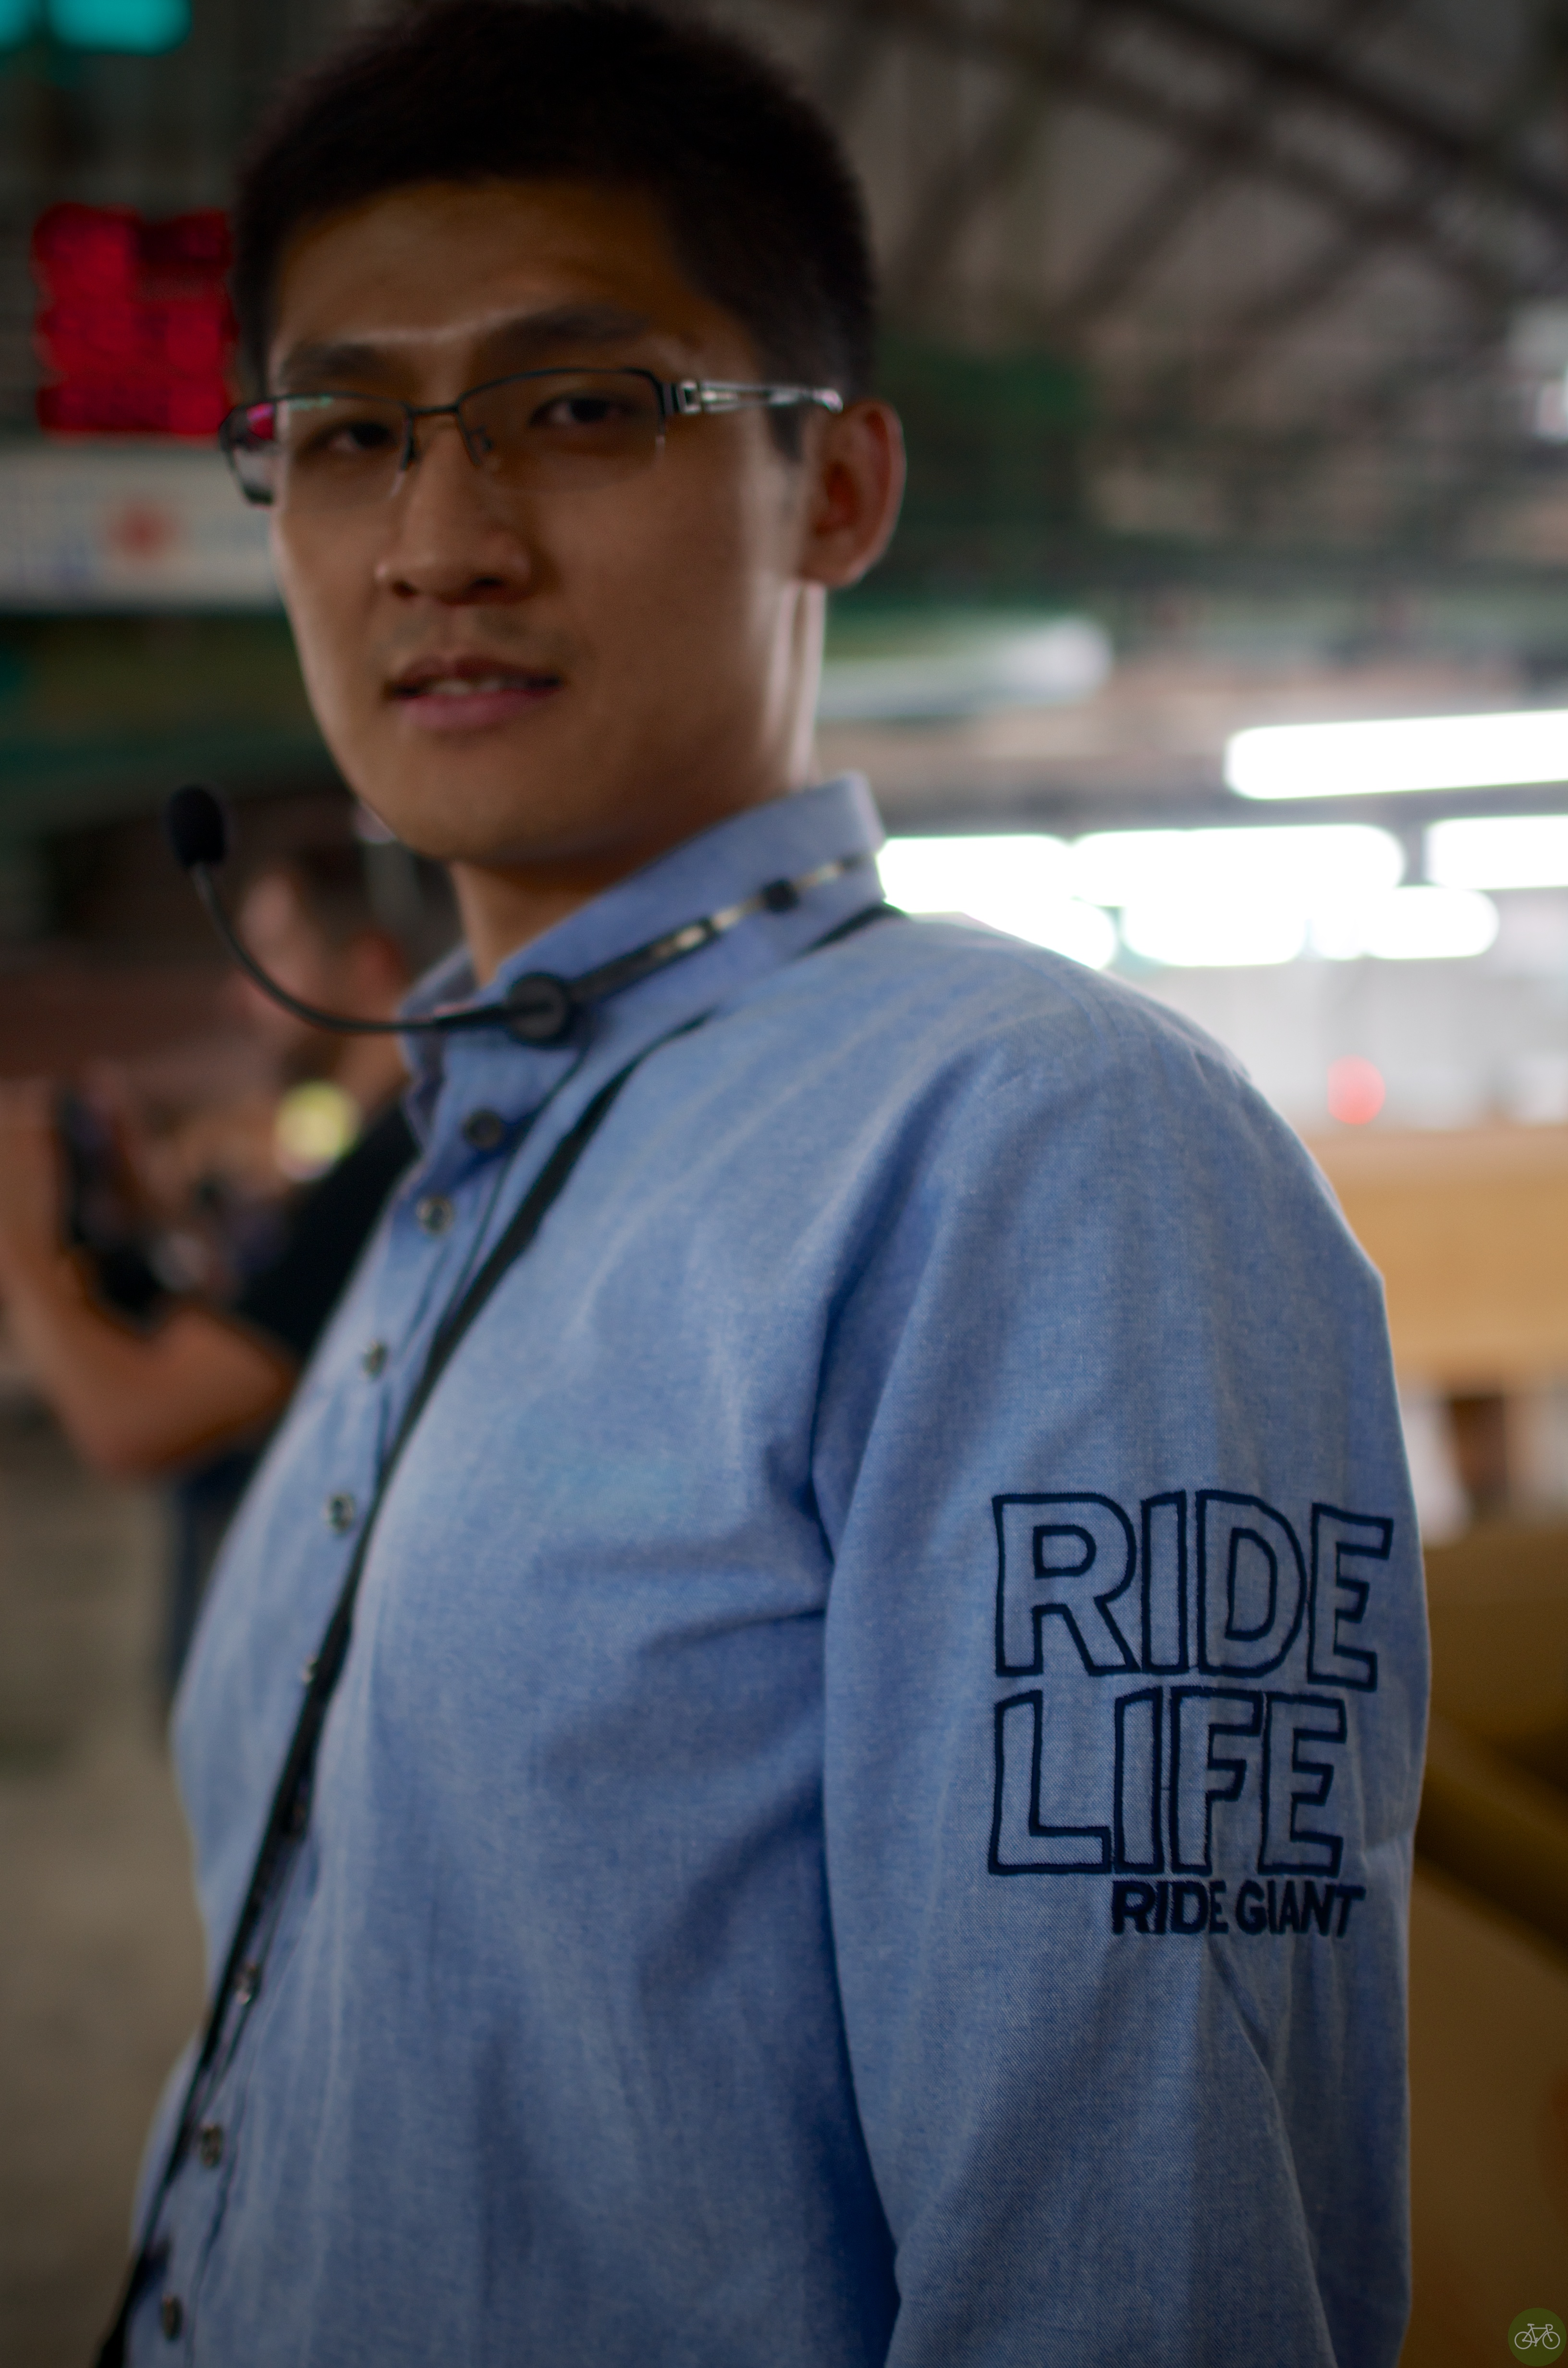 Ride Life Ride Giant